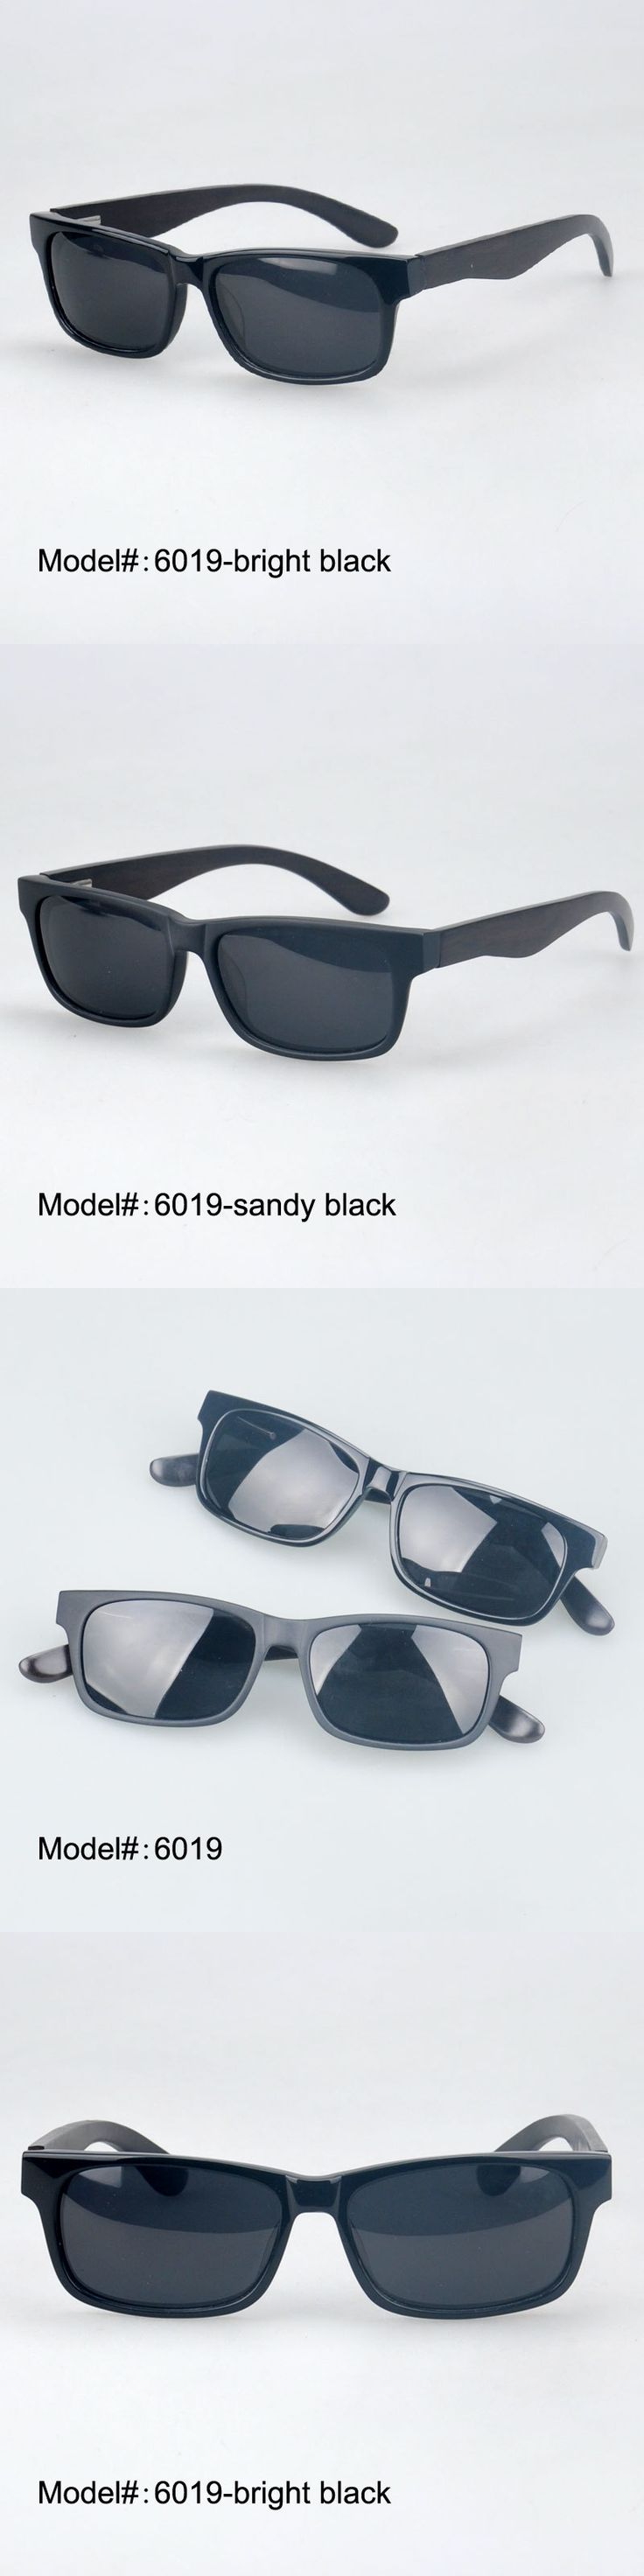 MY DOLI 6019 New style for men acetate frame wooden temple sunglasses with spring hinge  sunshade UVB